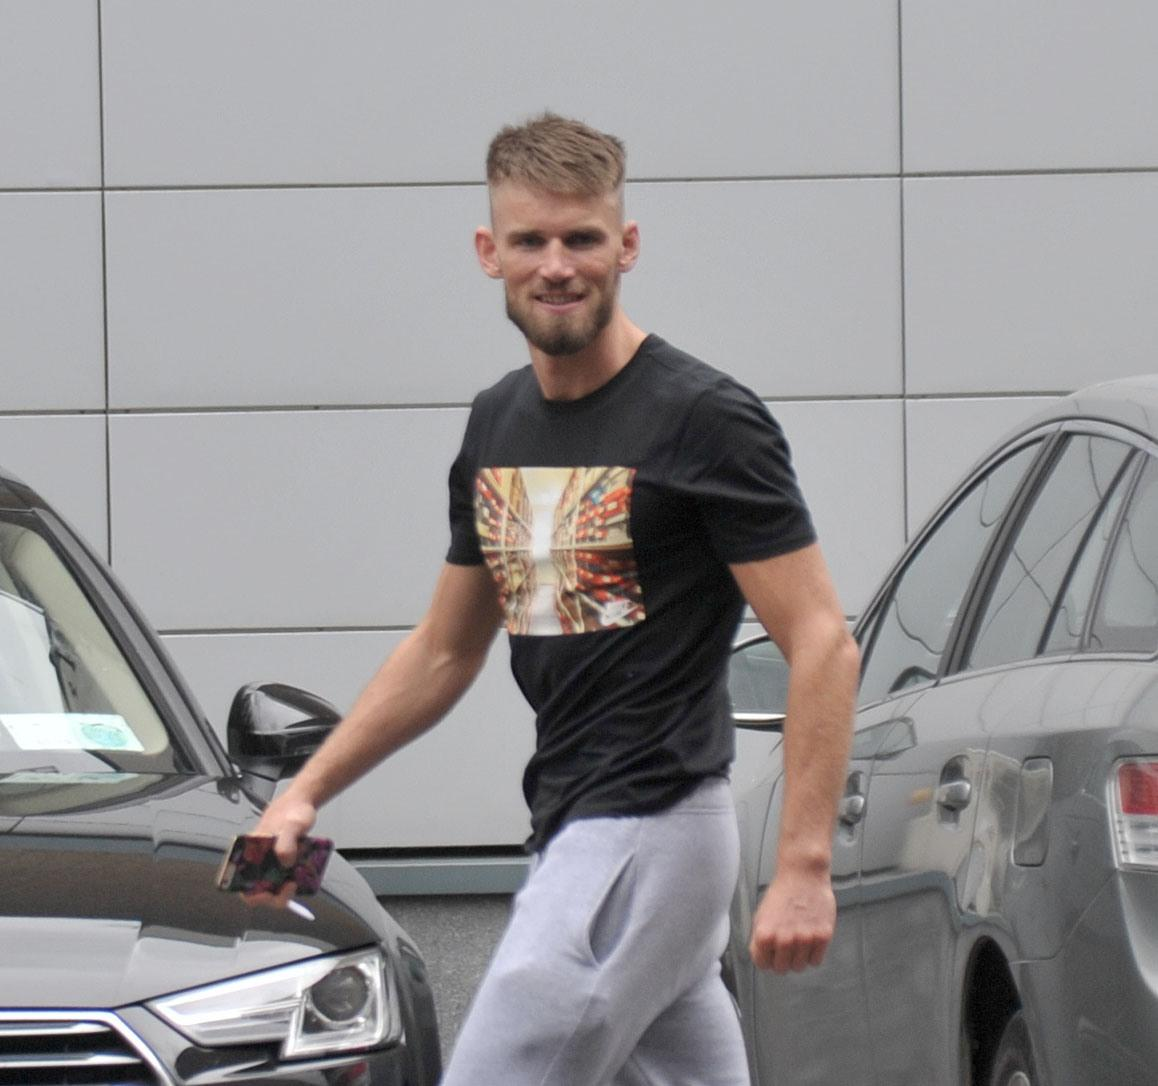 His co-accused pal Cian was also spotted at the Irish travel hub before jetting out to the Big Apple with Conor